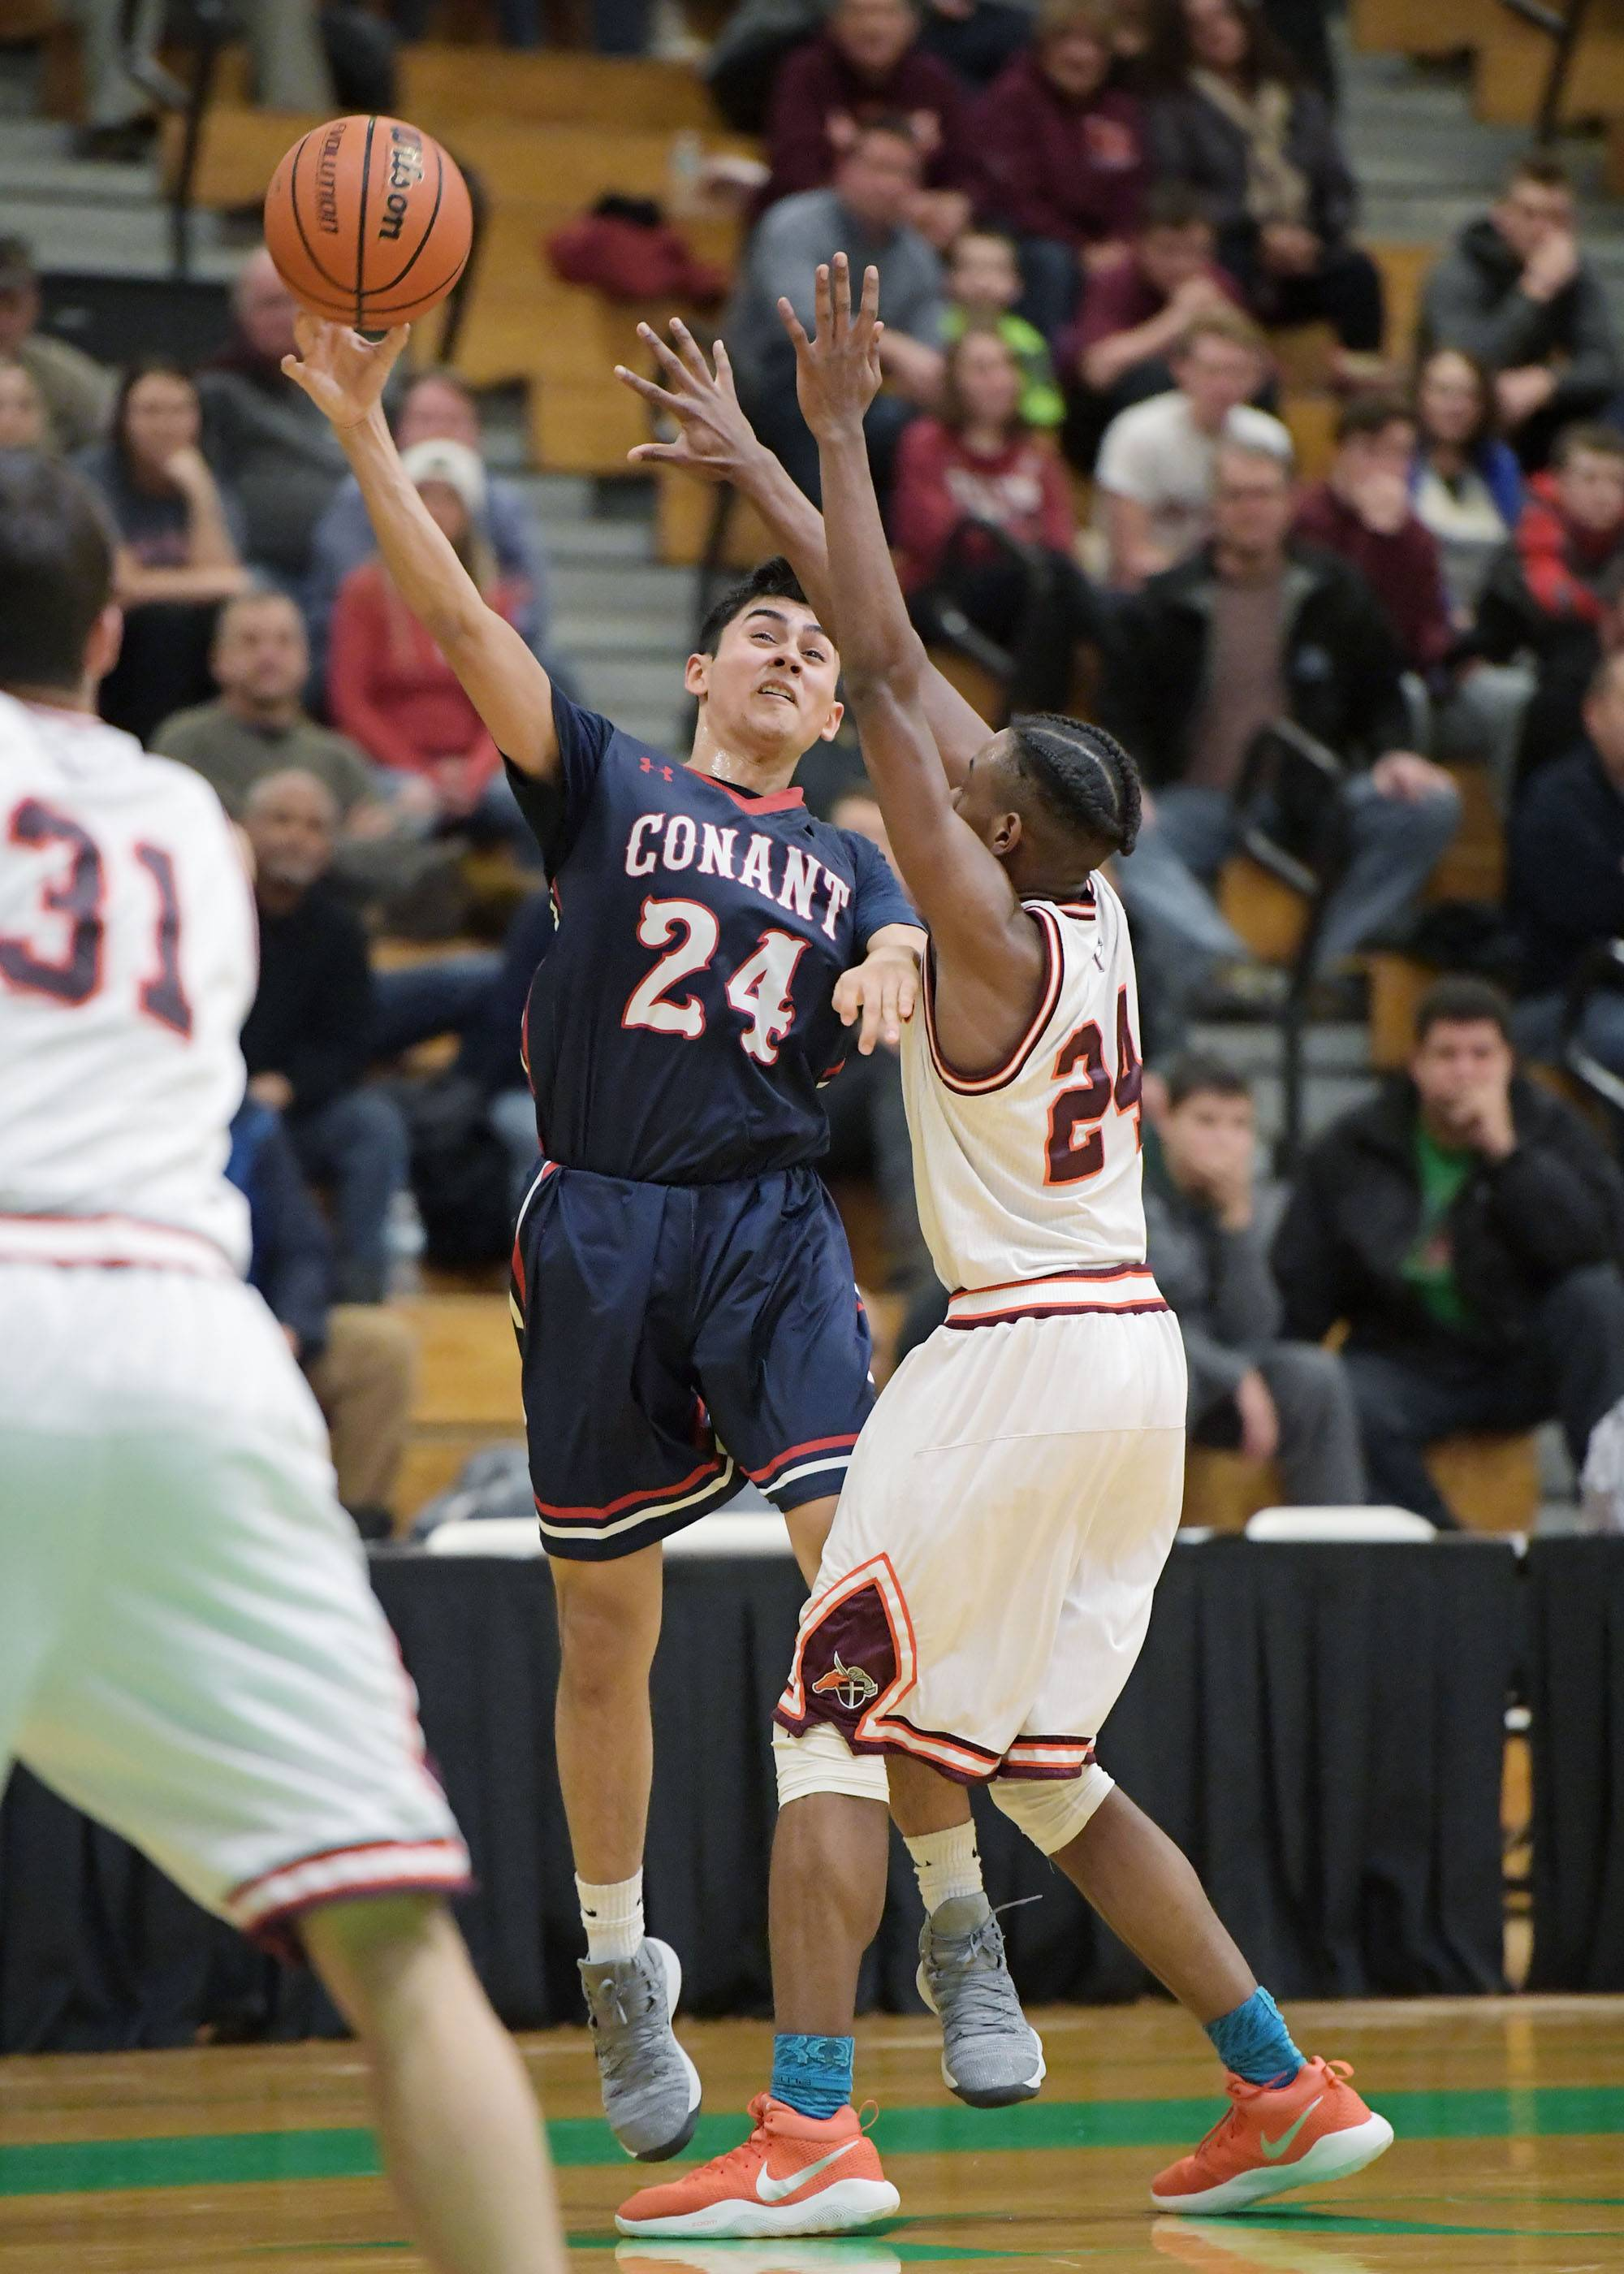 Conant's Joe Arriaga passes around Brother Rice's Marquise Kennedy on Saturday at York High School in Elmhurst.